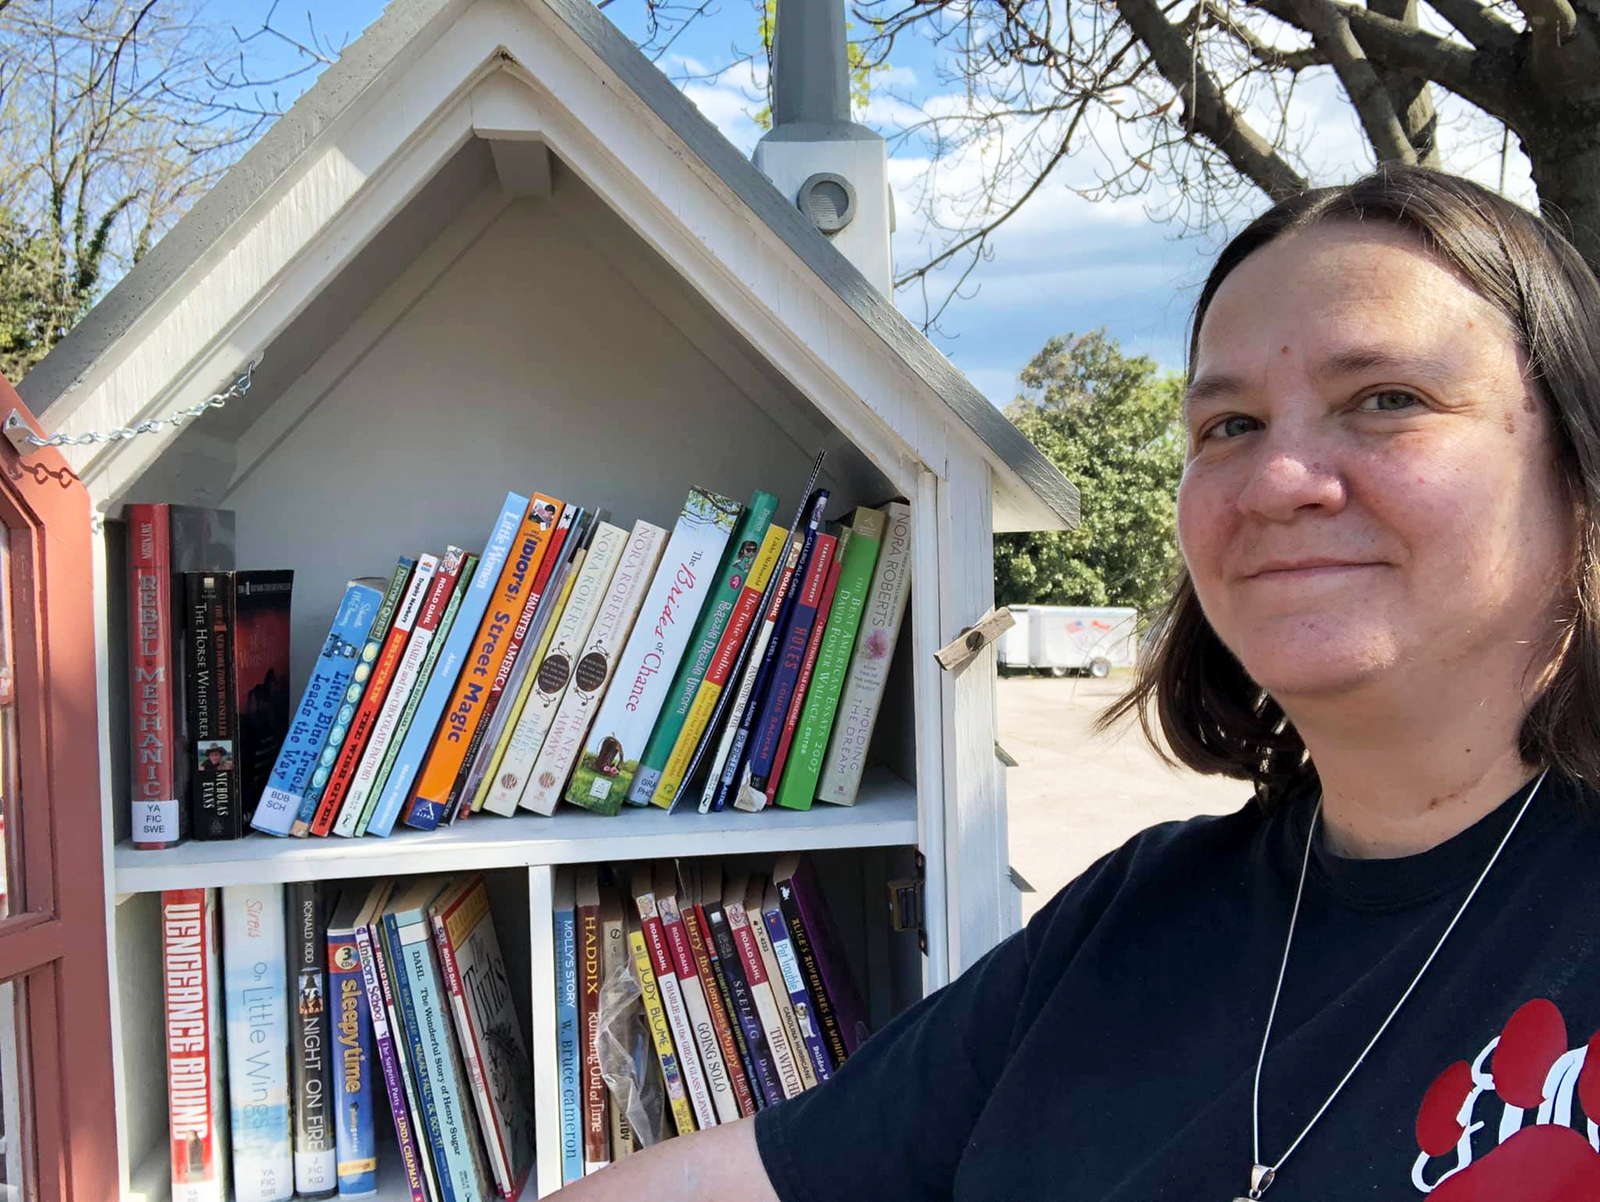 A woman, nicknamed 'book lady,' wants to give away 1 million books to her community